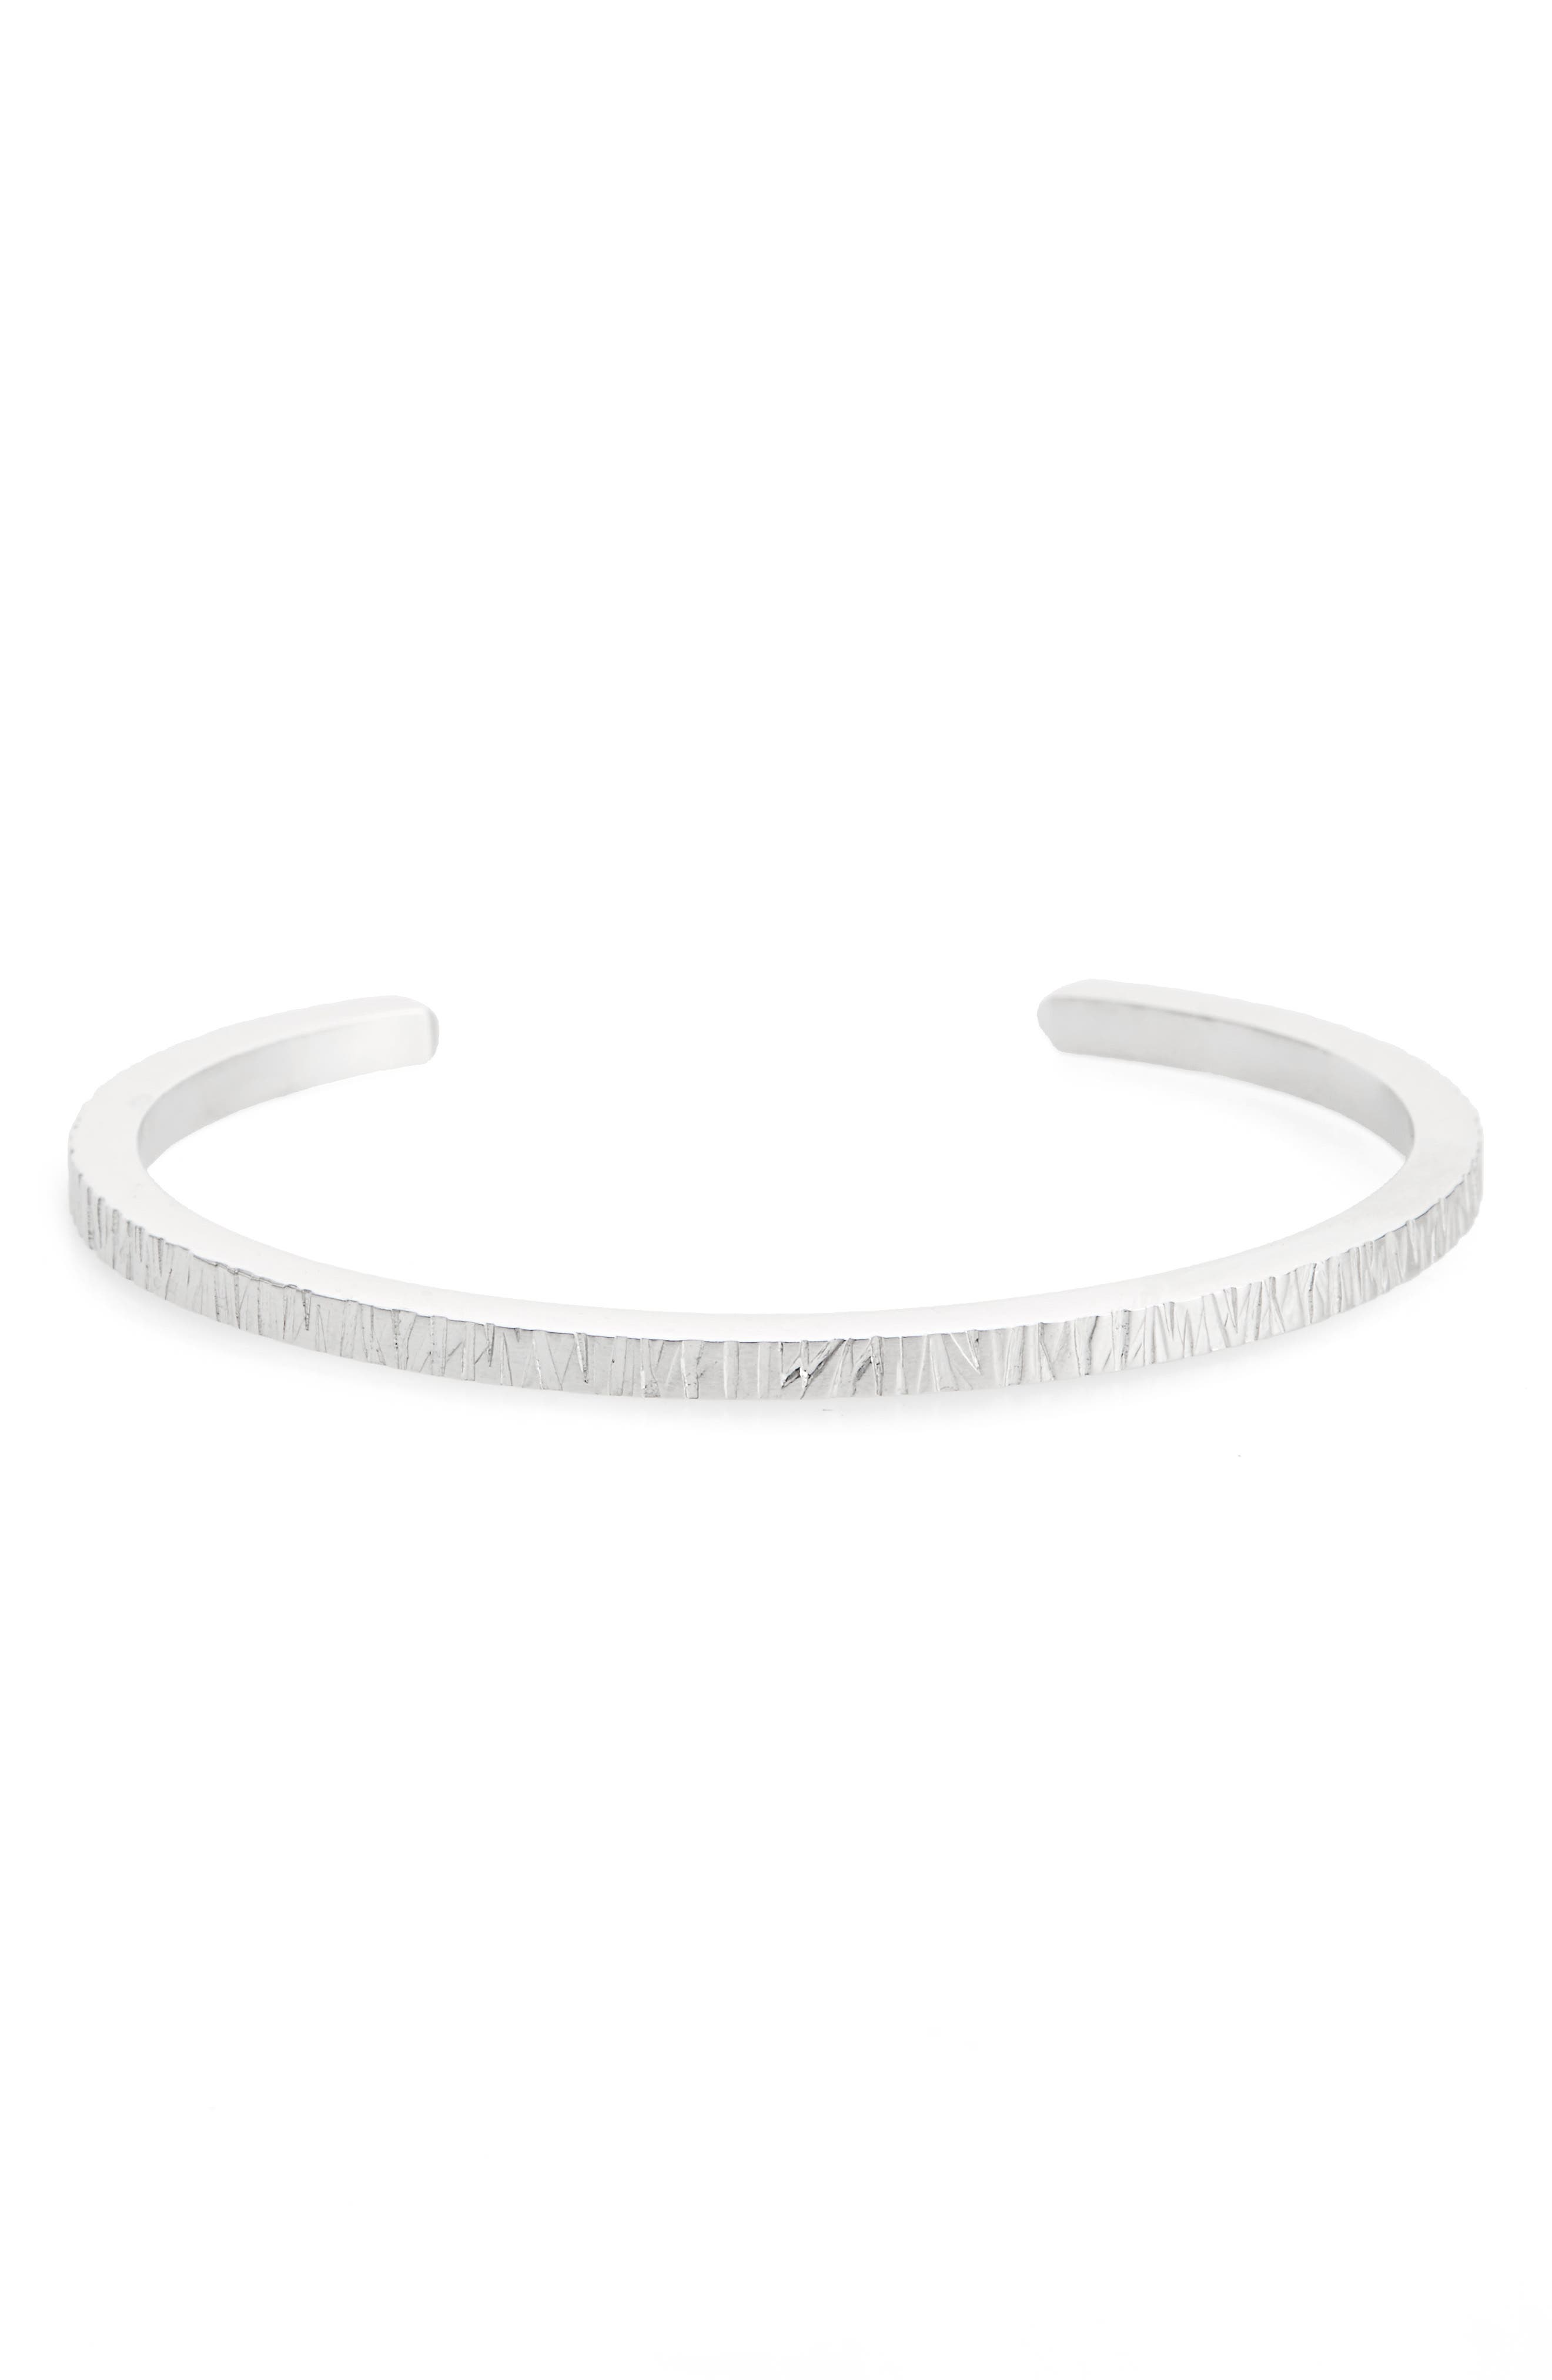 Structured Cuff Bracelet,                         Main,                         color, 925 STERLING SILVER